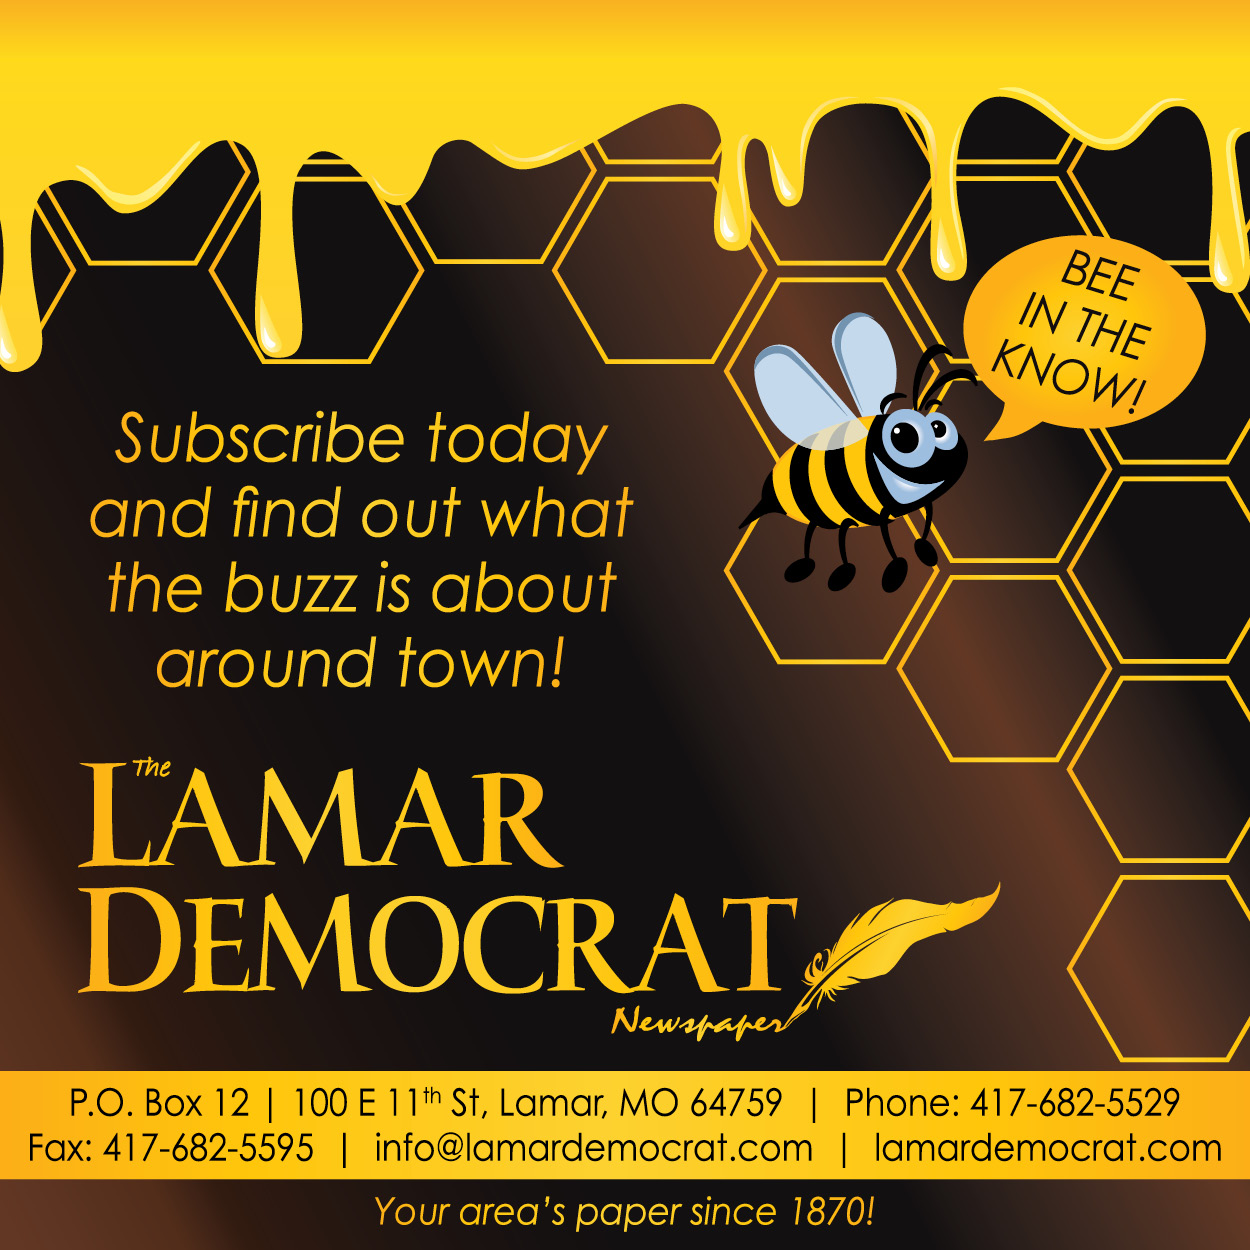 LD-Subscribe What's The Buzz About